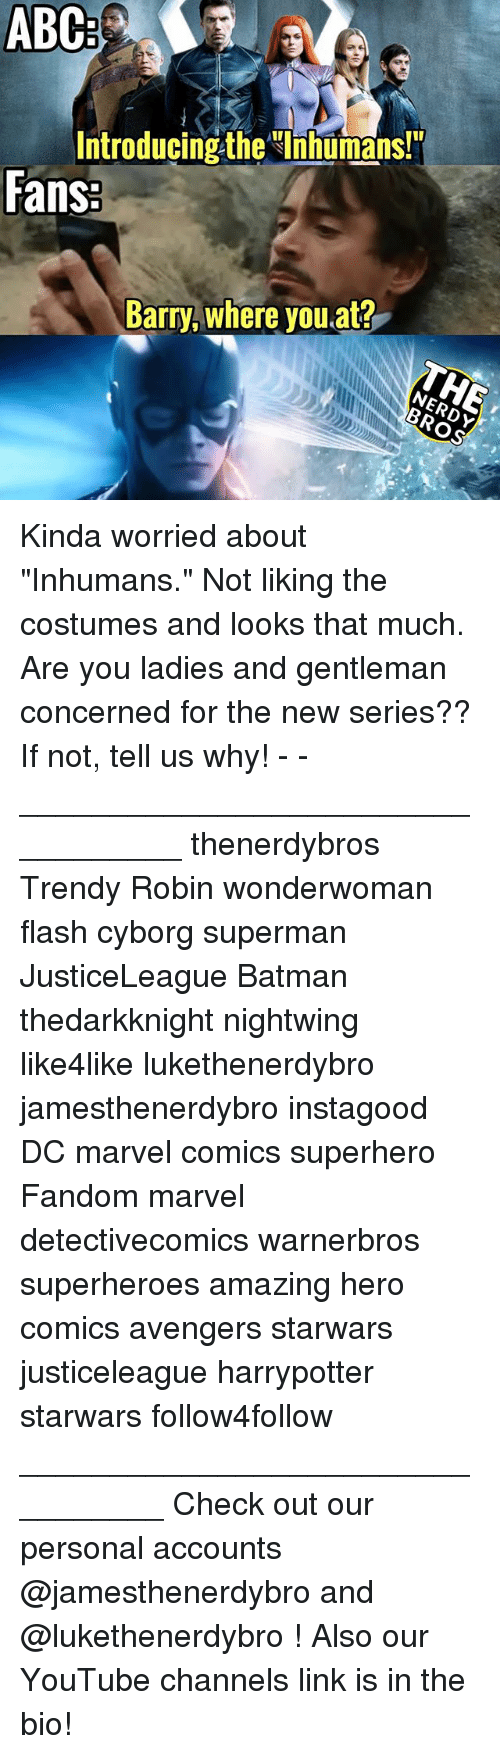 "Gentlemane: ABC  Introducing the Ihhumans!  Fans  Barry, where you at? Kinda worried about ""Inhumans."" Not liking the costumes and looks that much. Are you ladies and gentleman concerned for the new series?? If not, tell us why! - - __________________________________ thenerdybros Trendy Robin wonderwoman flash cyborg superman JusticeLeague Batman thedarkknight nightwing like4like lukethenerdybro jamesthenerdybro instagood DC marvel comics superhero Fandom marvel detectivecomics warnerbros superheroes amazing hero comics avengers starwars justiceleague harrypotter starwars follow4follow _________________________________ Check out our personal accounts @jamesthenerdybro and @lukethenerdybro ! Also our YouTube channels link is in the bio!"